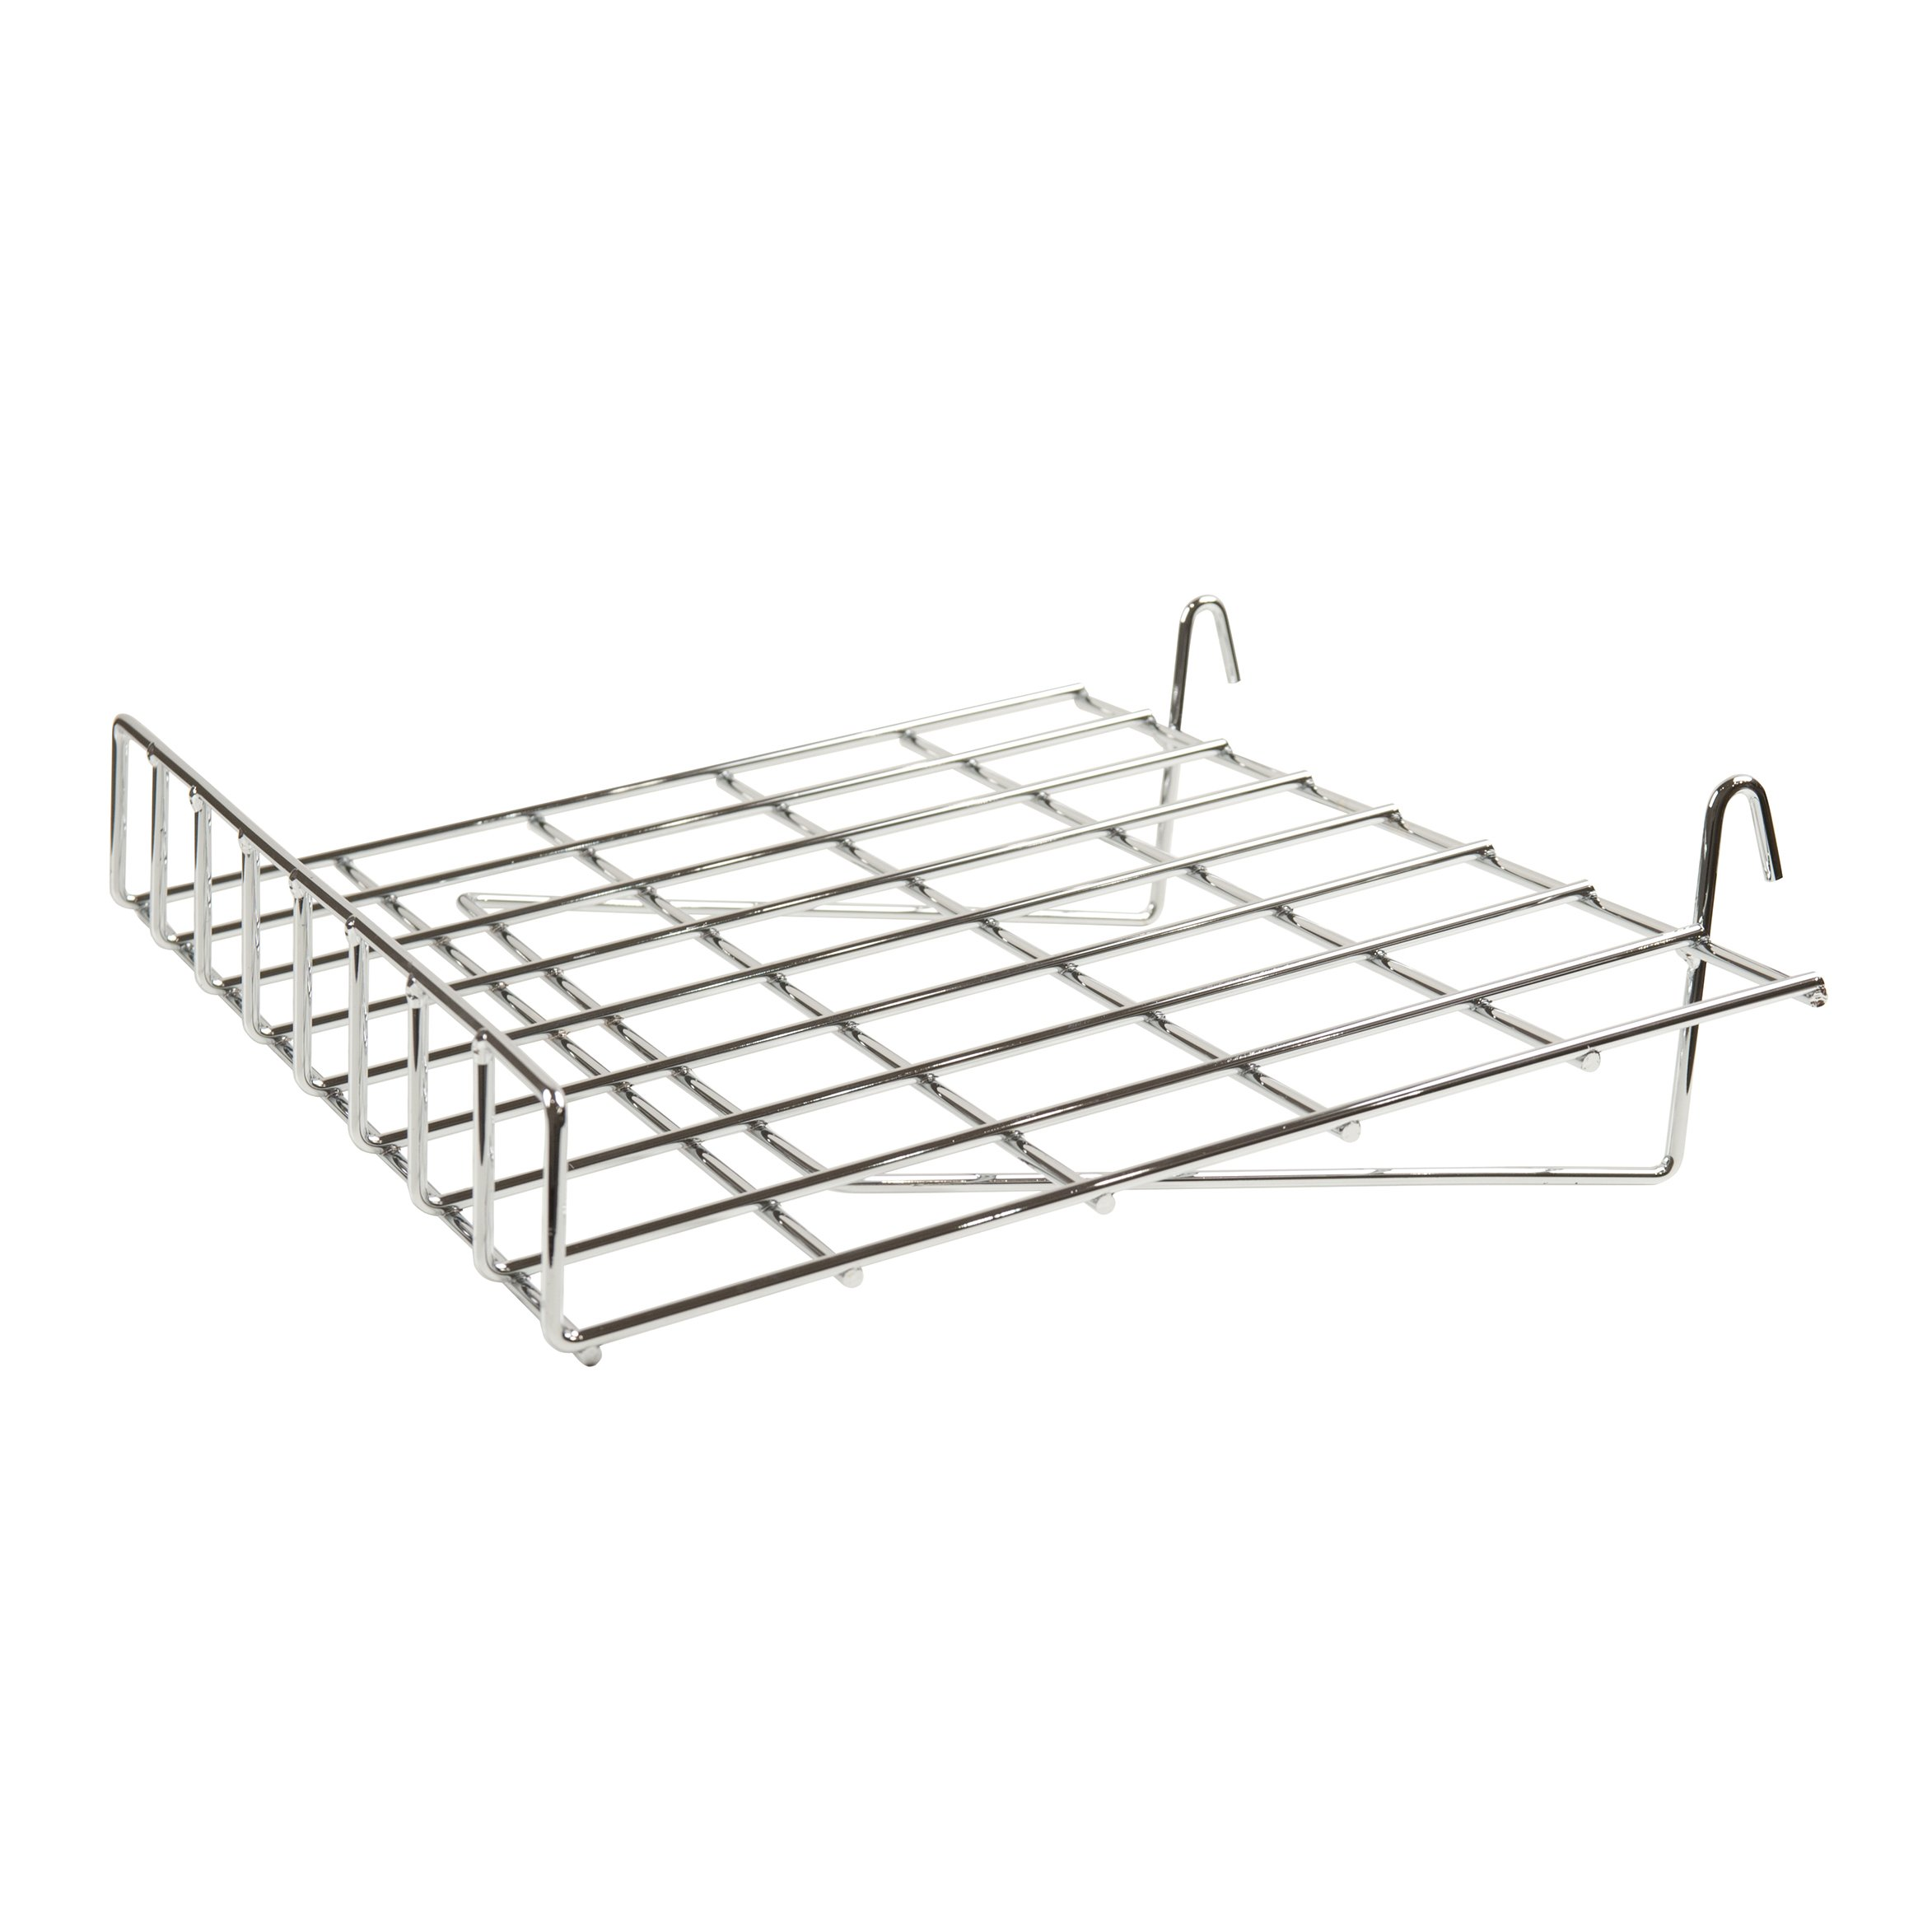 Econoco GWS/91 Slant Shelf with Front Lip, 15'' x 24'' (Pack of 4)